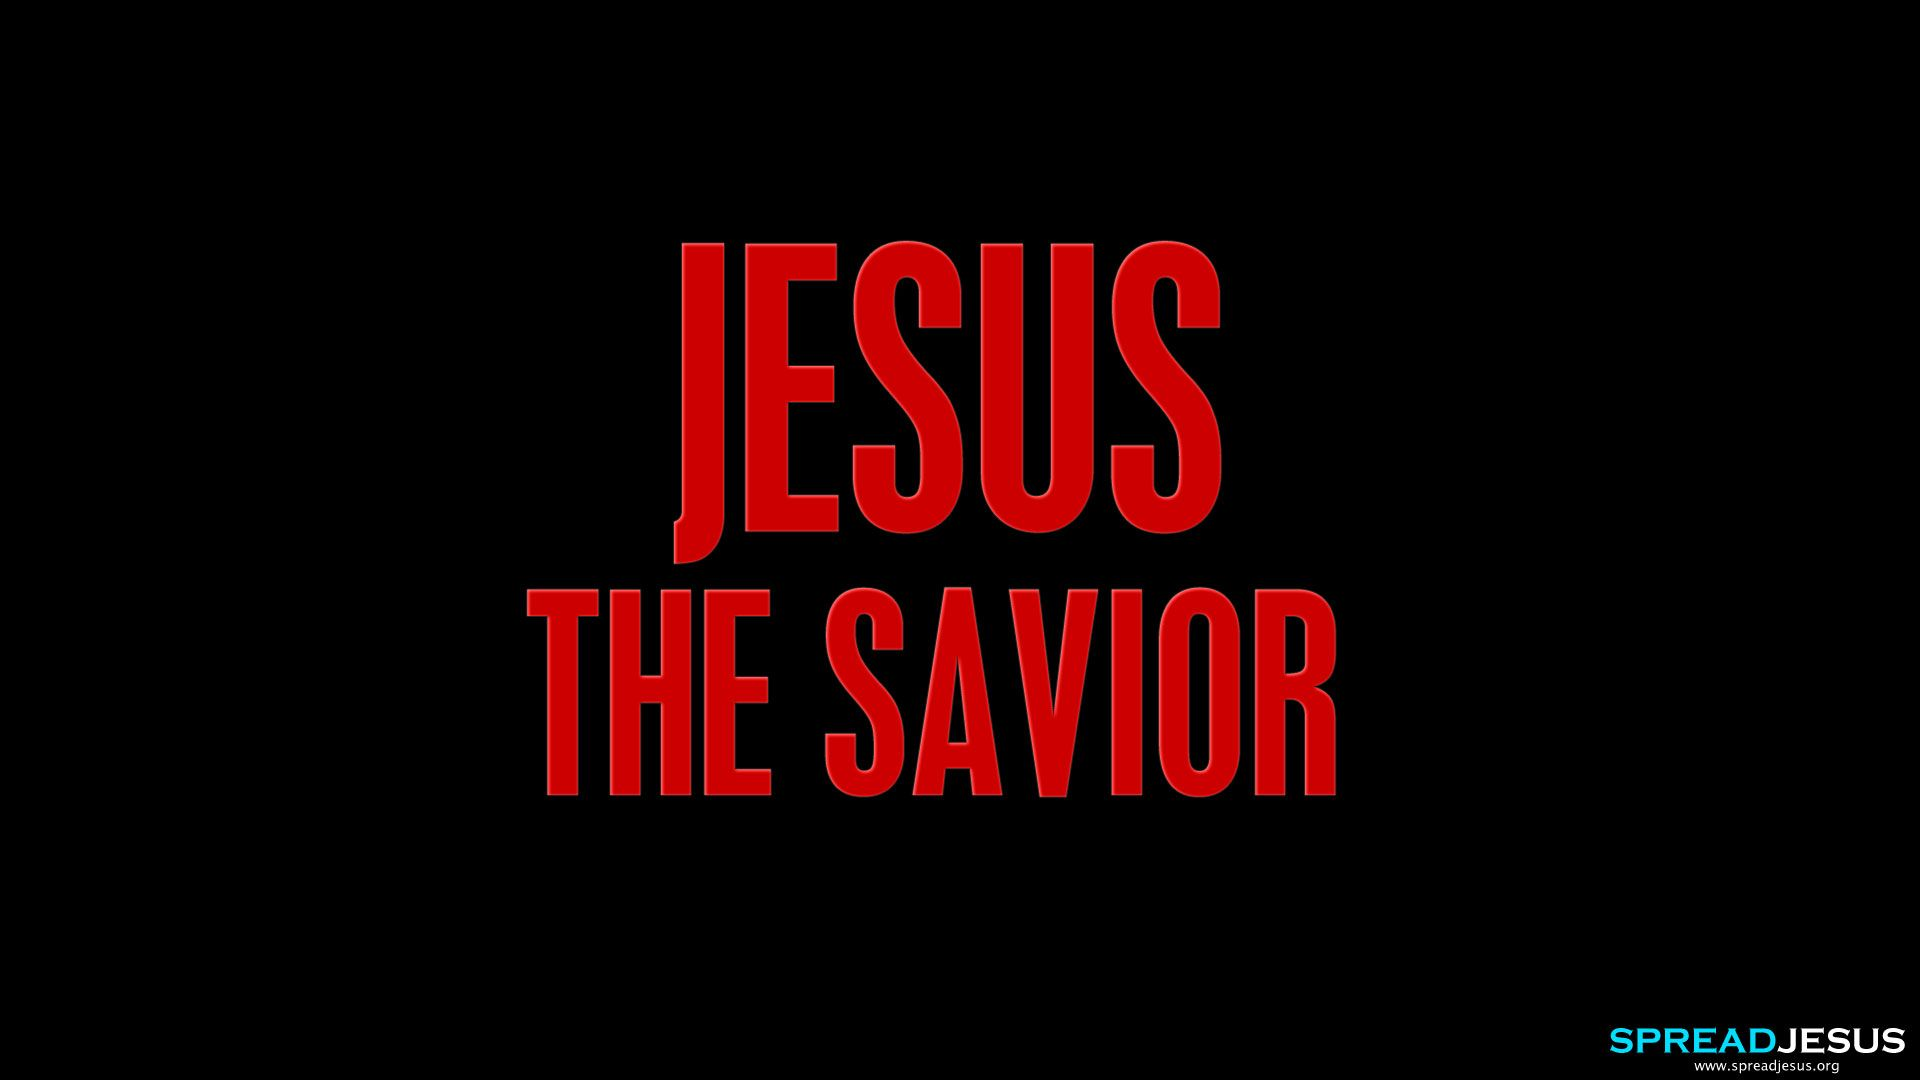 jesus hd quality wallpapers for free